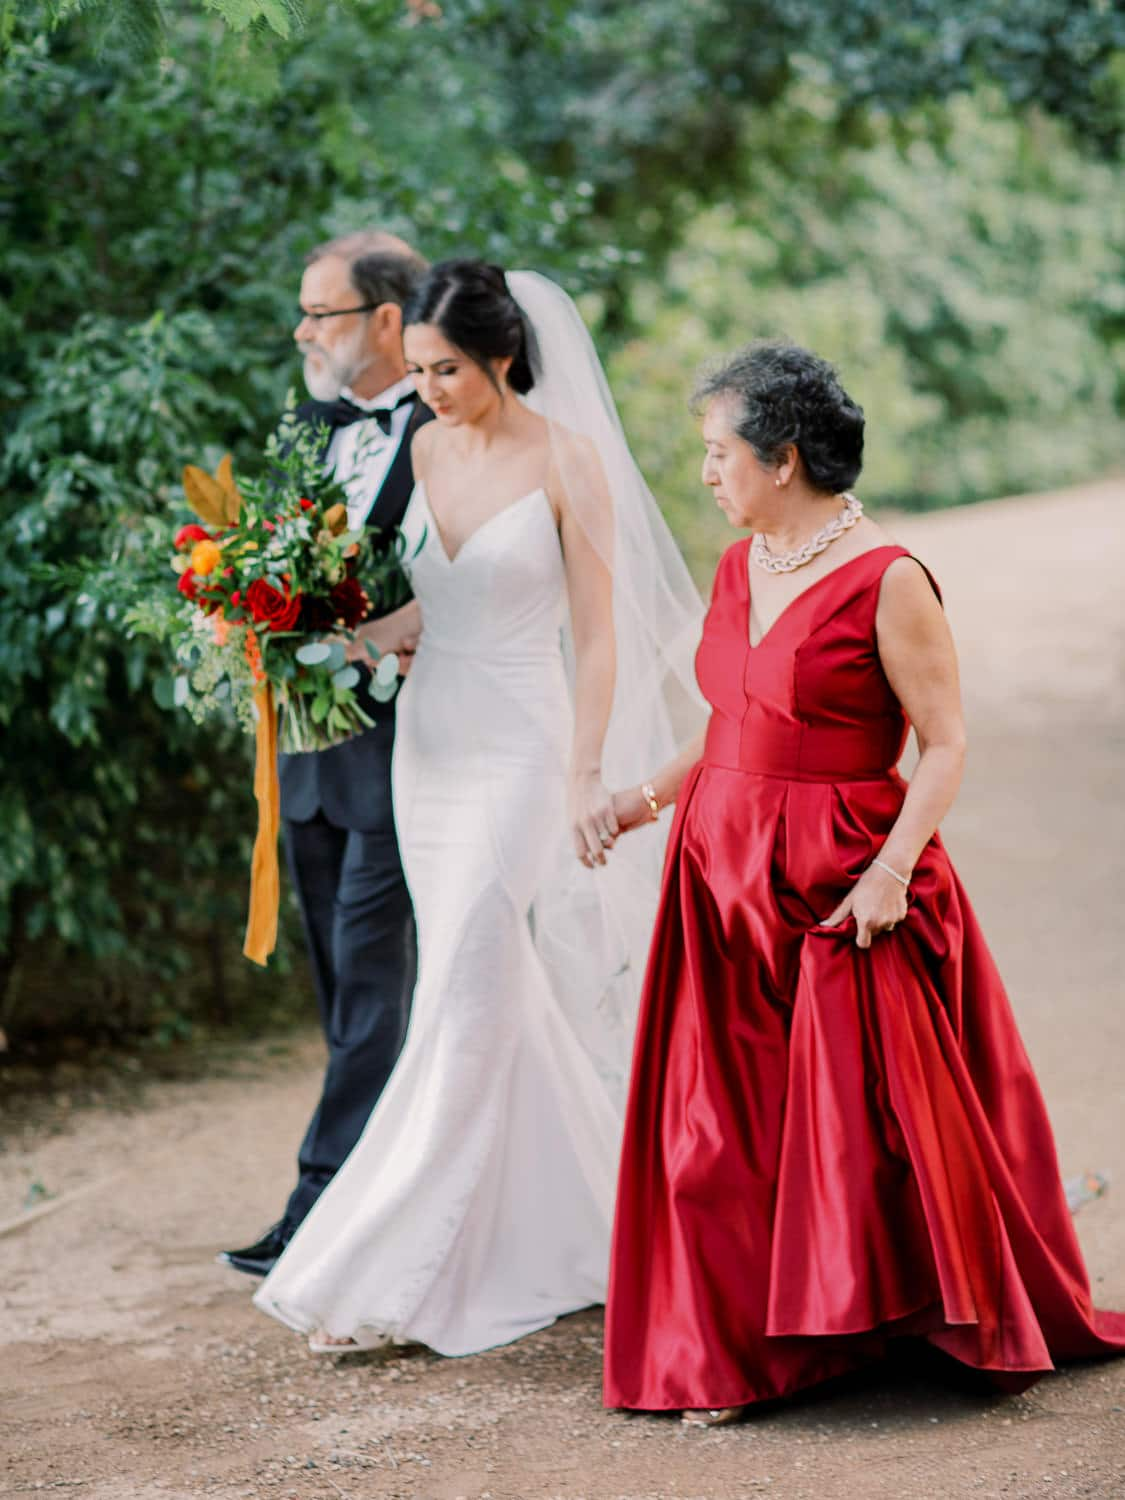 Bride-Walking-Down-The-Aisle-Photo-Greg-Ross